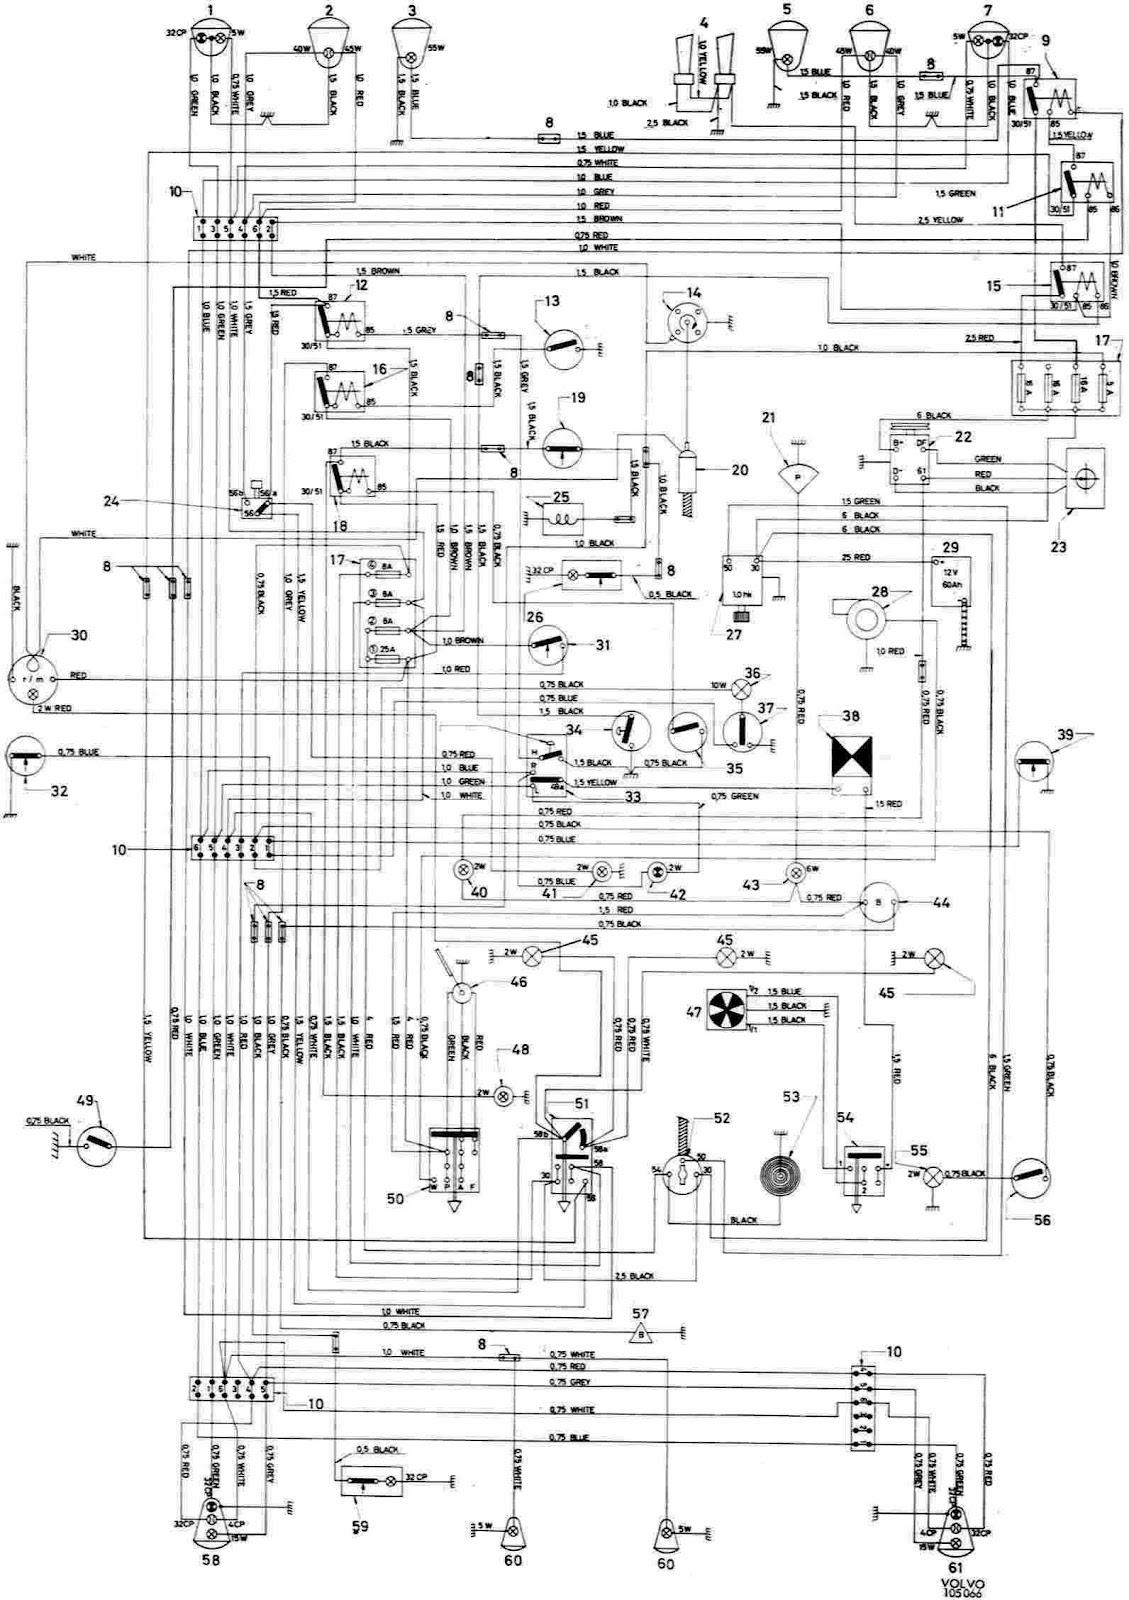 Volvo+123+GT+Complete+Wiring+Diagram 2005 volvo s40 wiring diagram volvo s40 steering diagram \u2022 wiring 2004 volvo xc90 wiring diagrams at cos-gaming.co